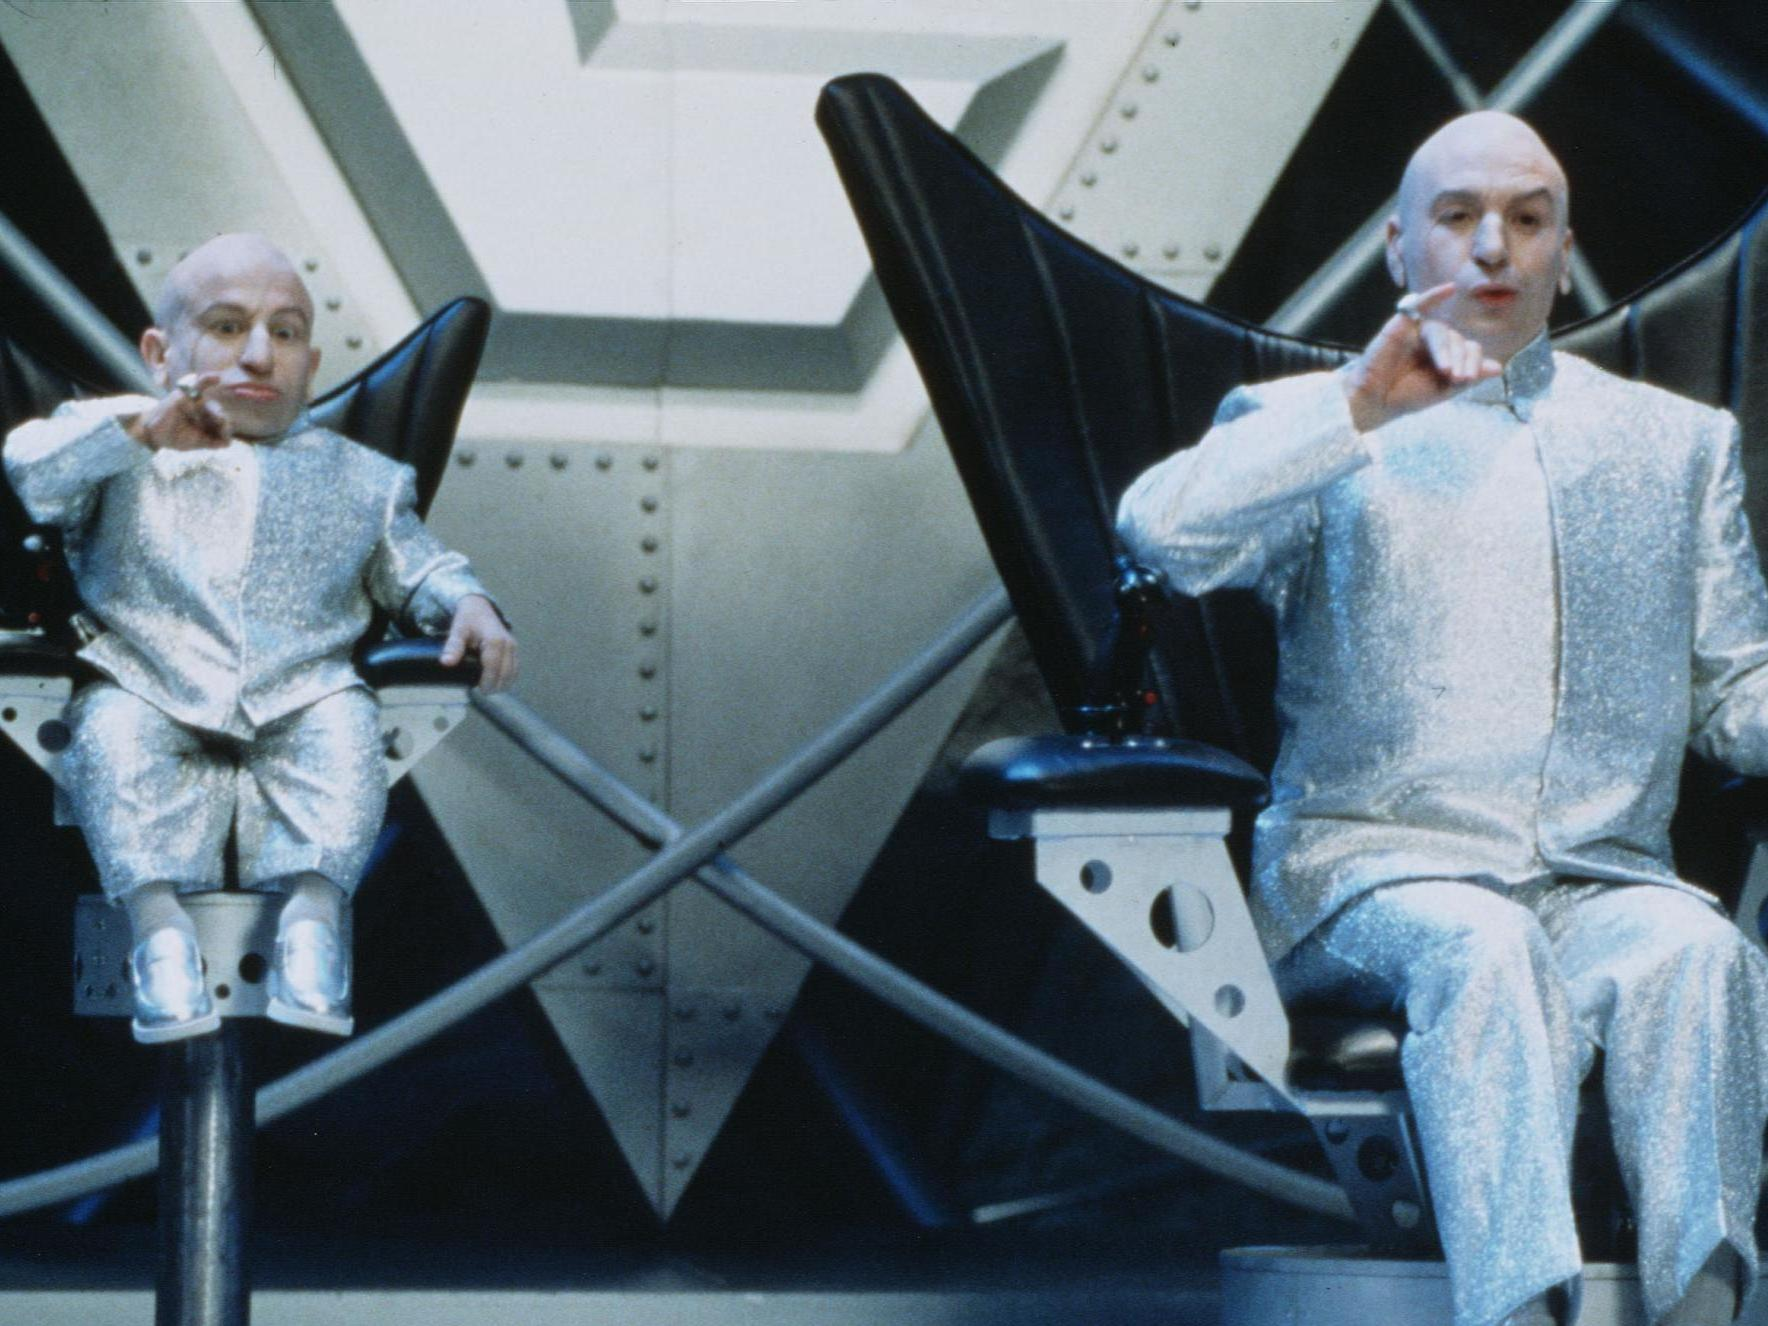 Austin Powers 4: Jay Roach says Mini-Me would have played key part in new film